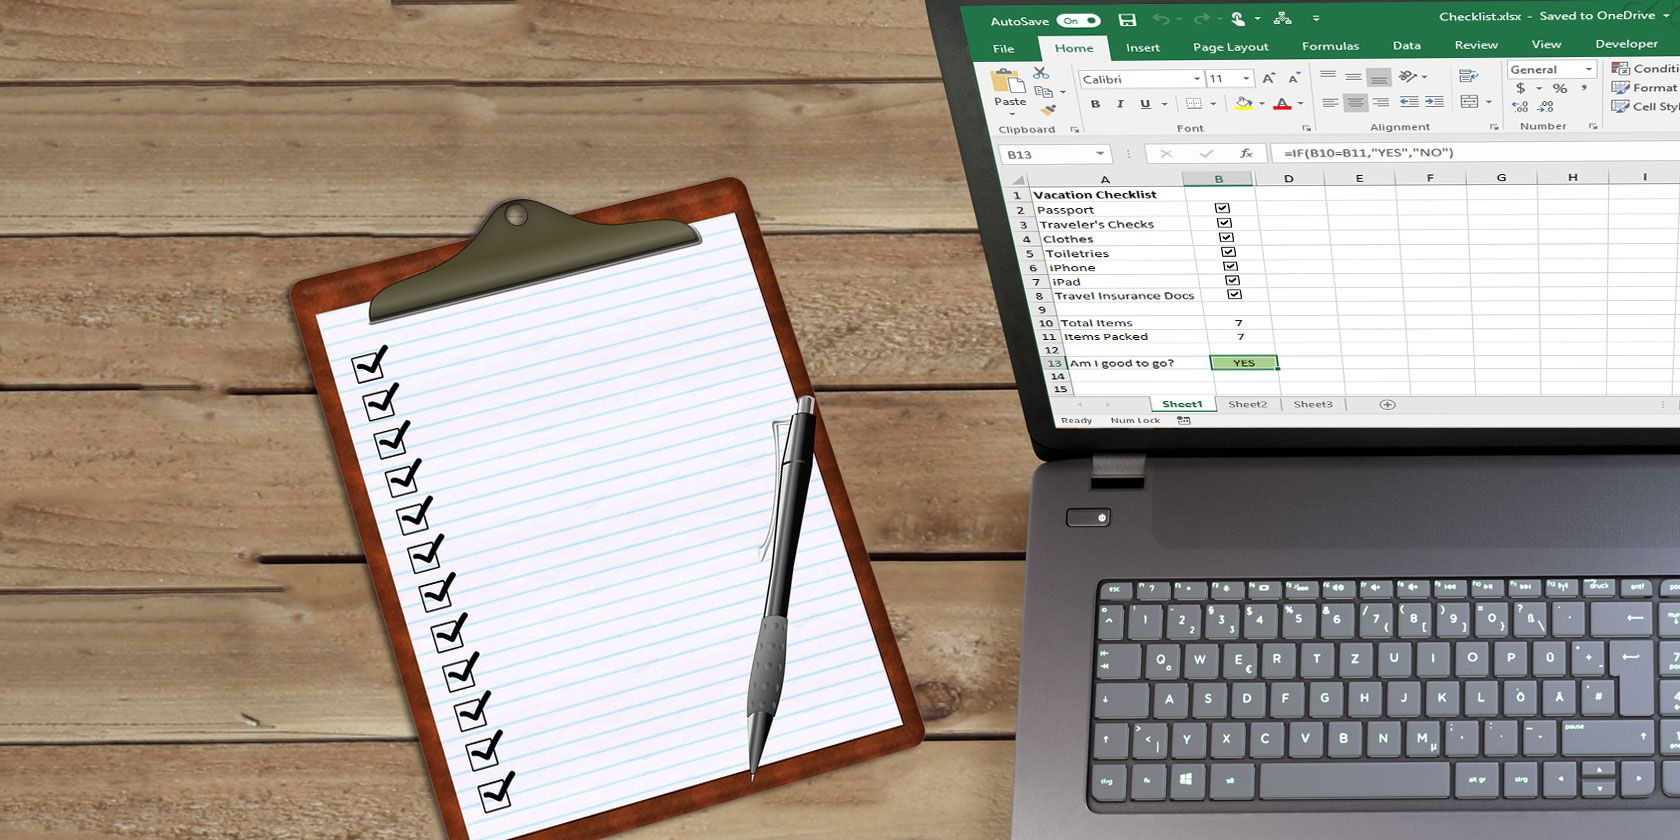 How to Create a Checklist in Microsoft Excel | MakeUseOf